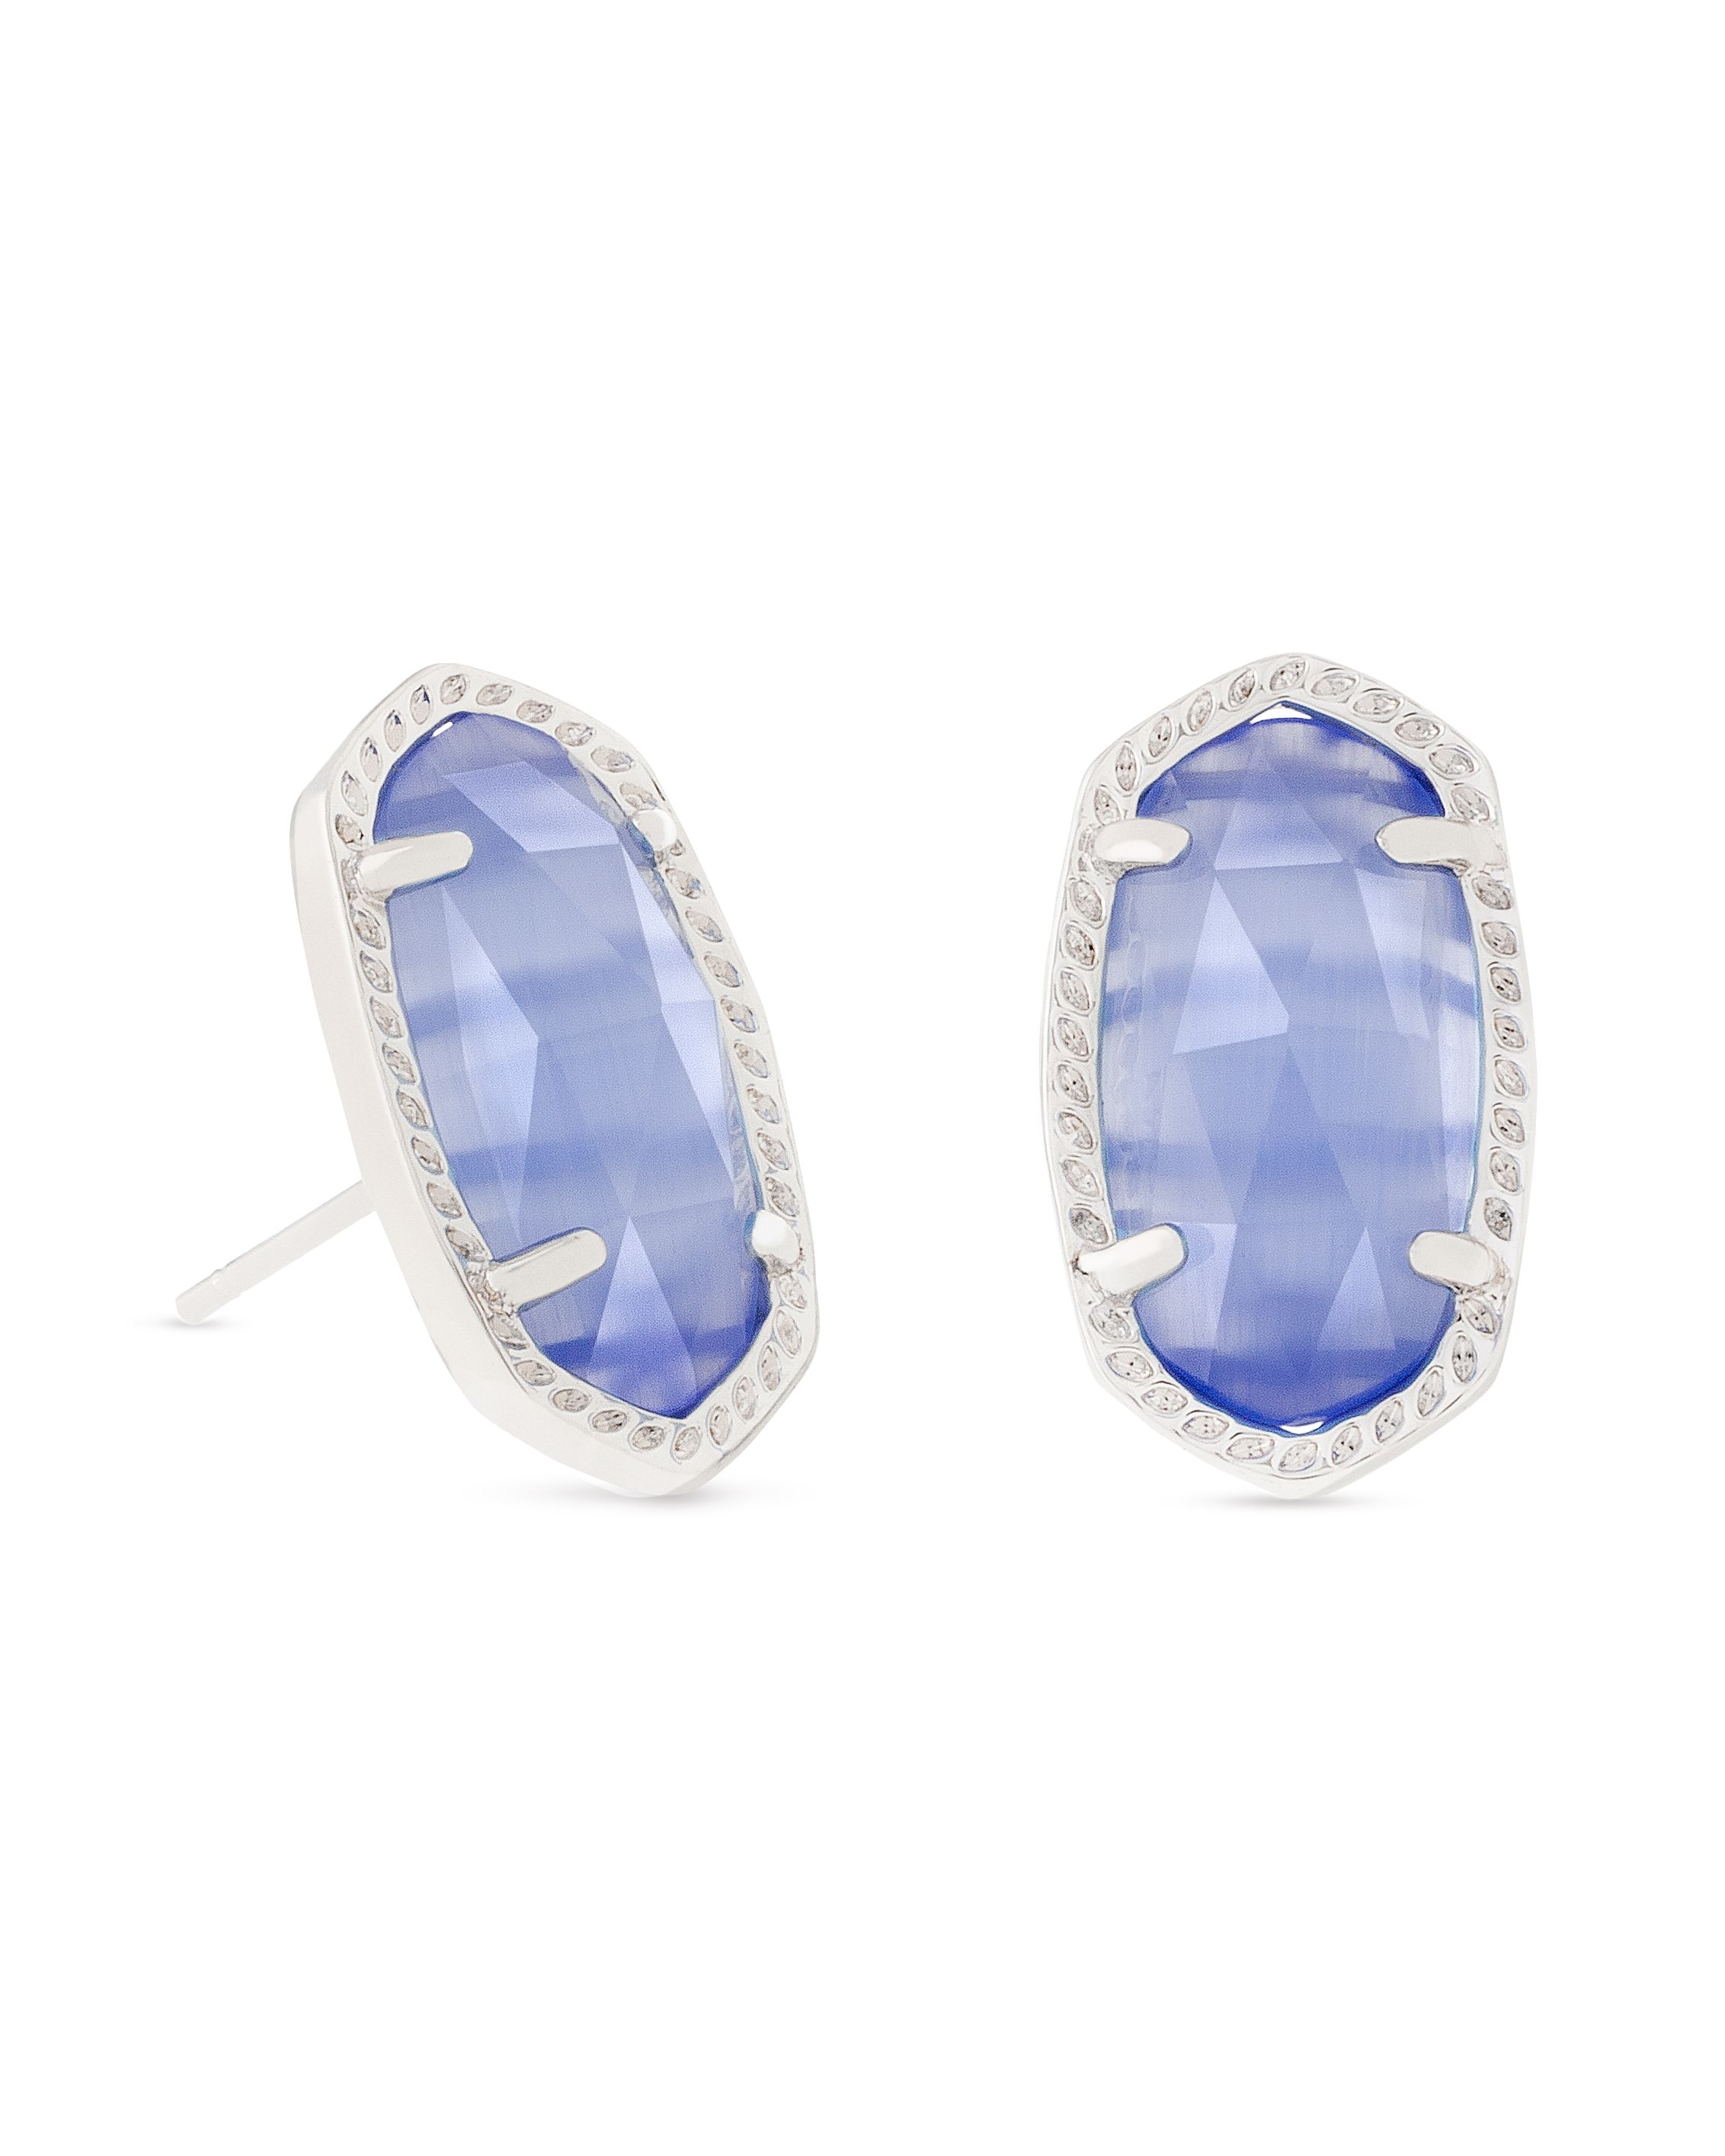 4a56addfd Ellie Silver Stud Earrings in Periwinkle Cat's Eye - Kendra Scott Jewelry